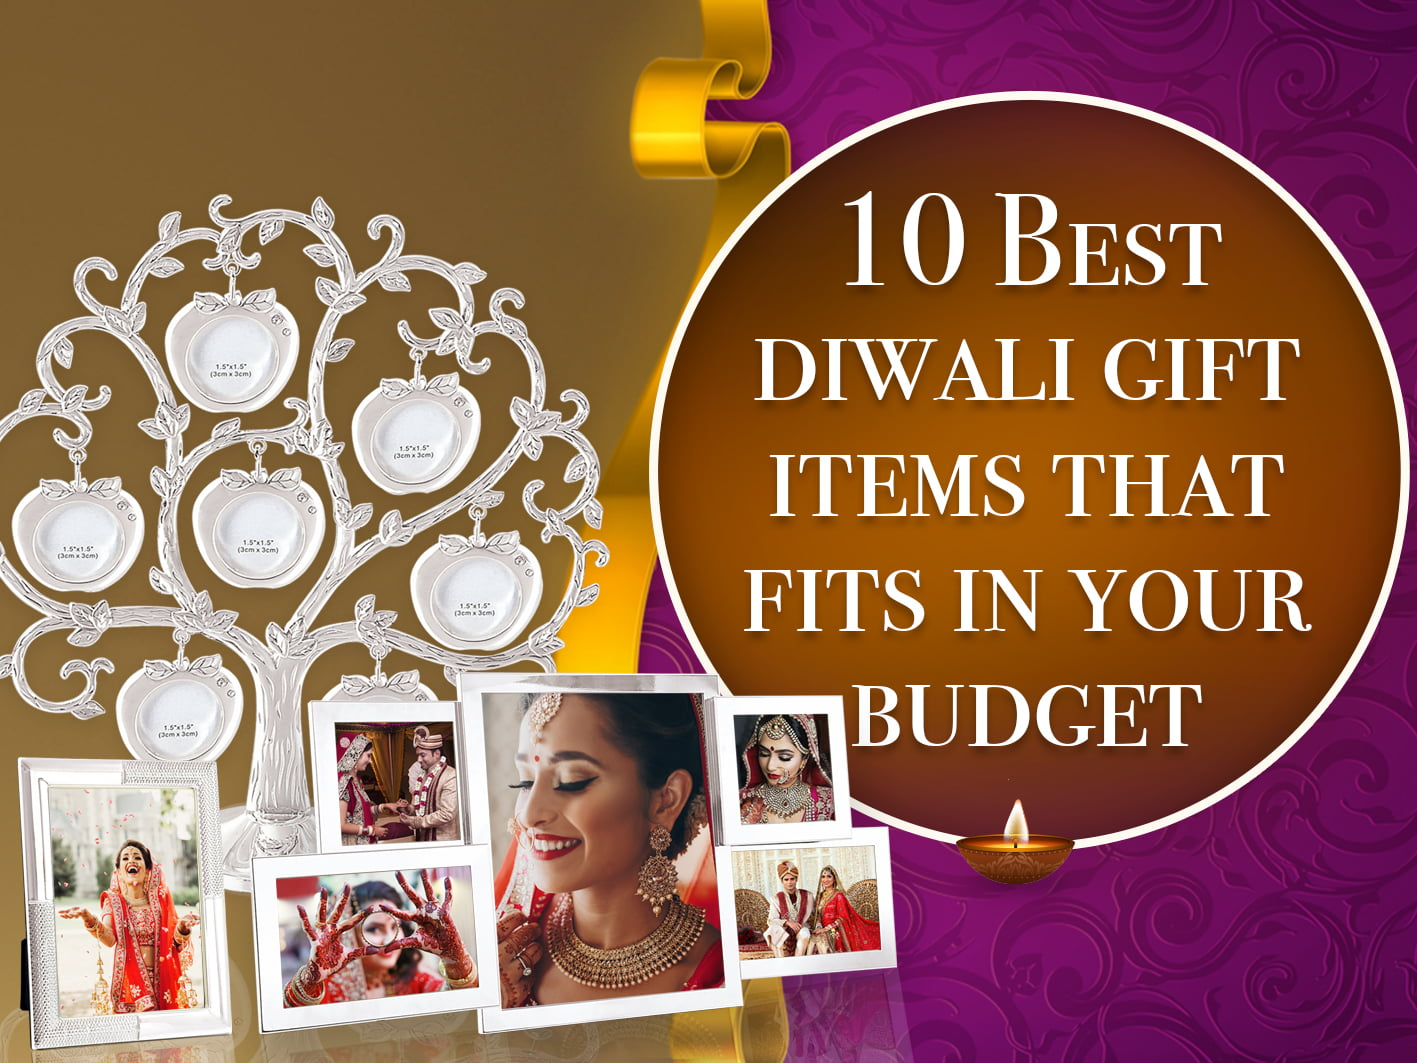 Diwali Gift ideas